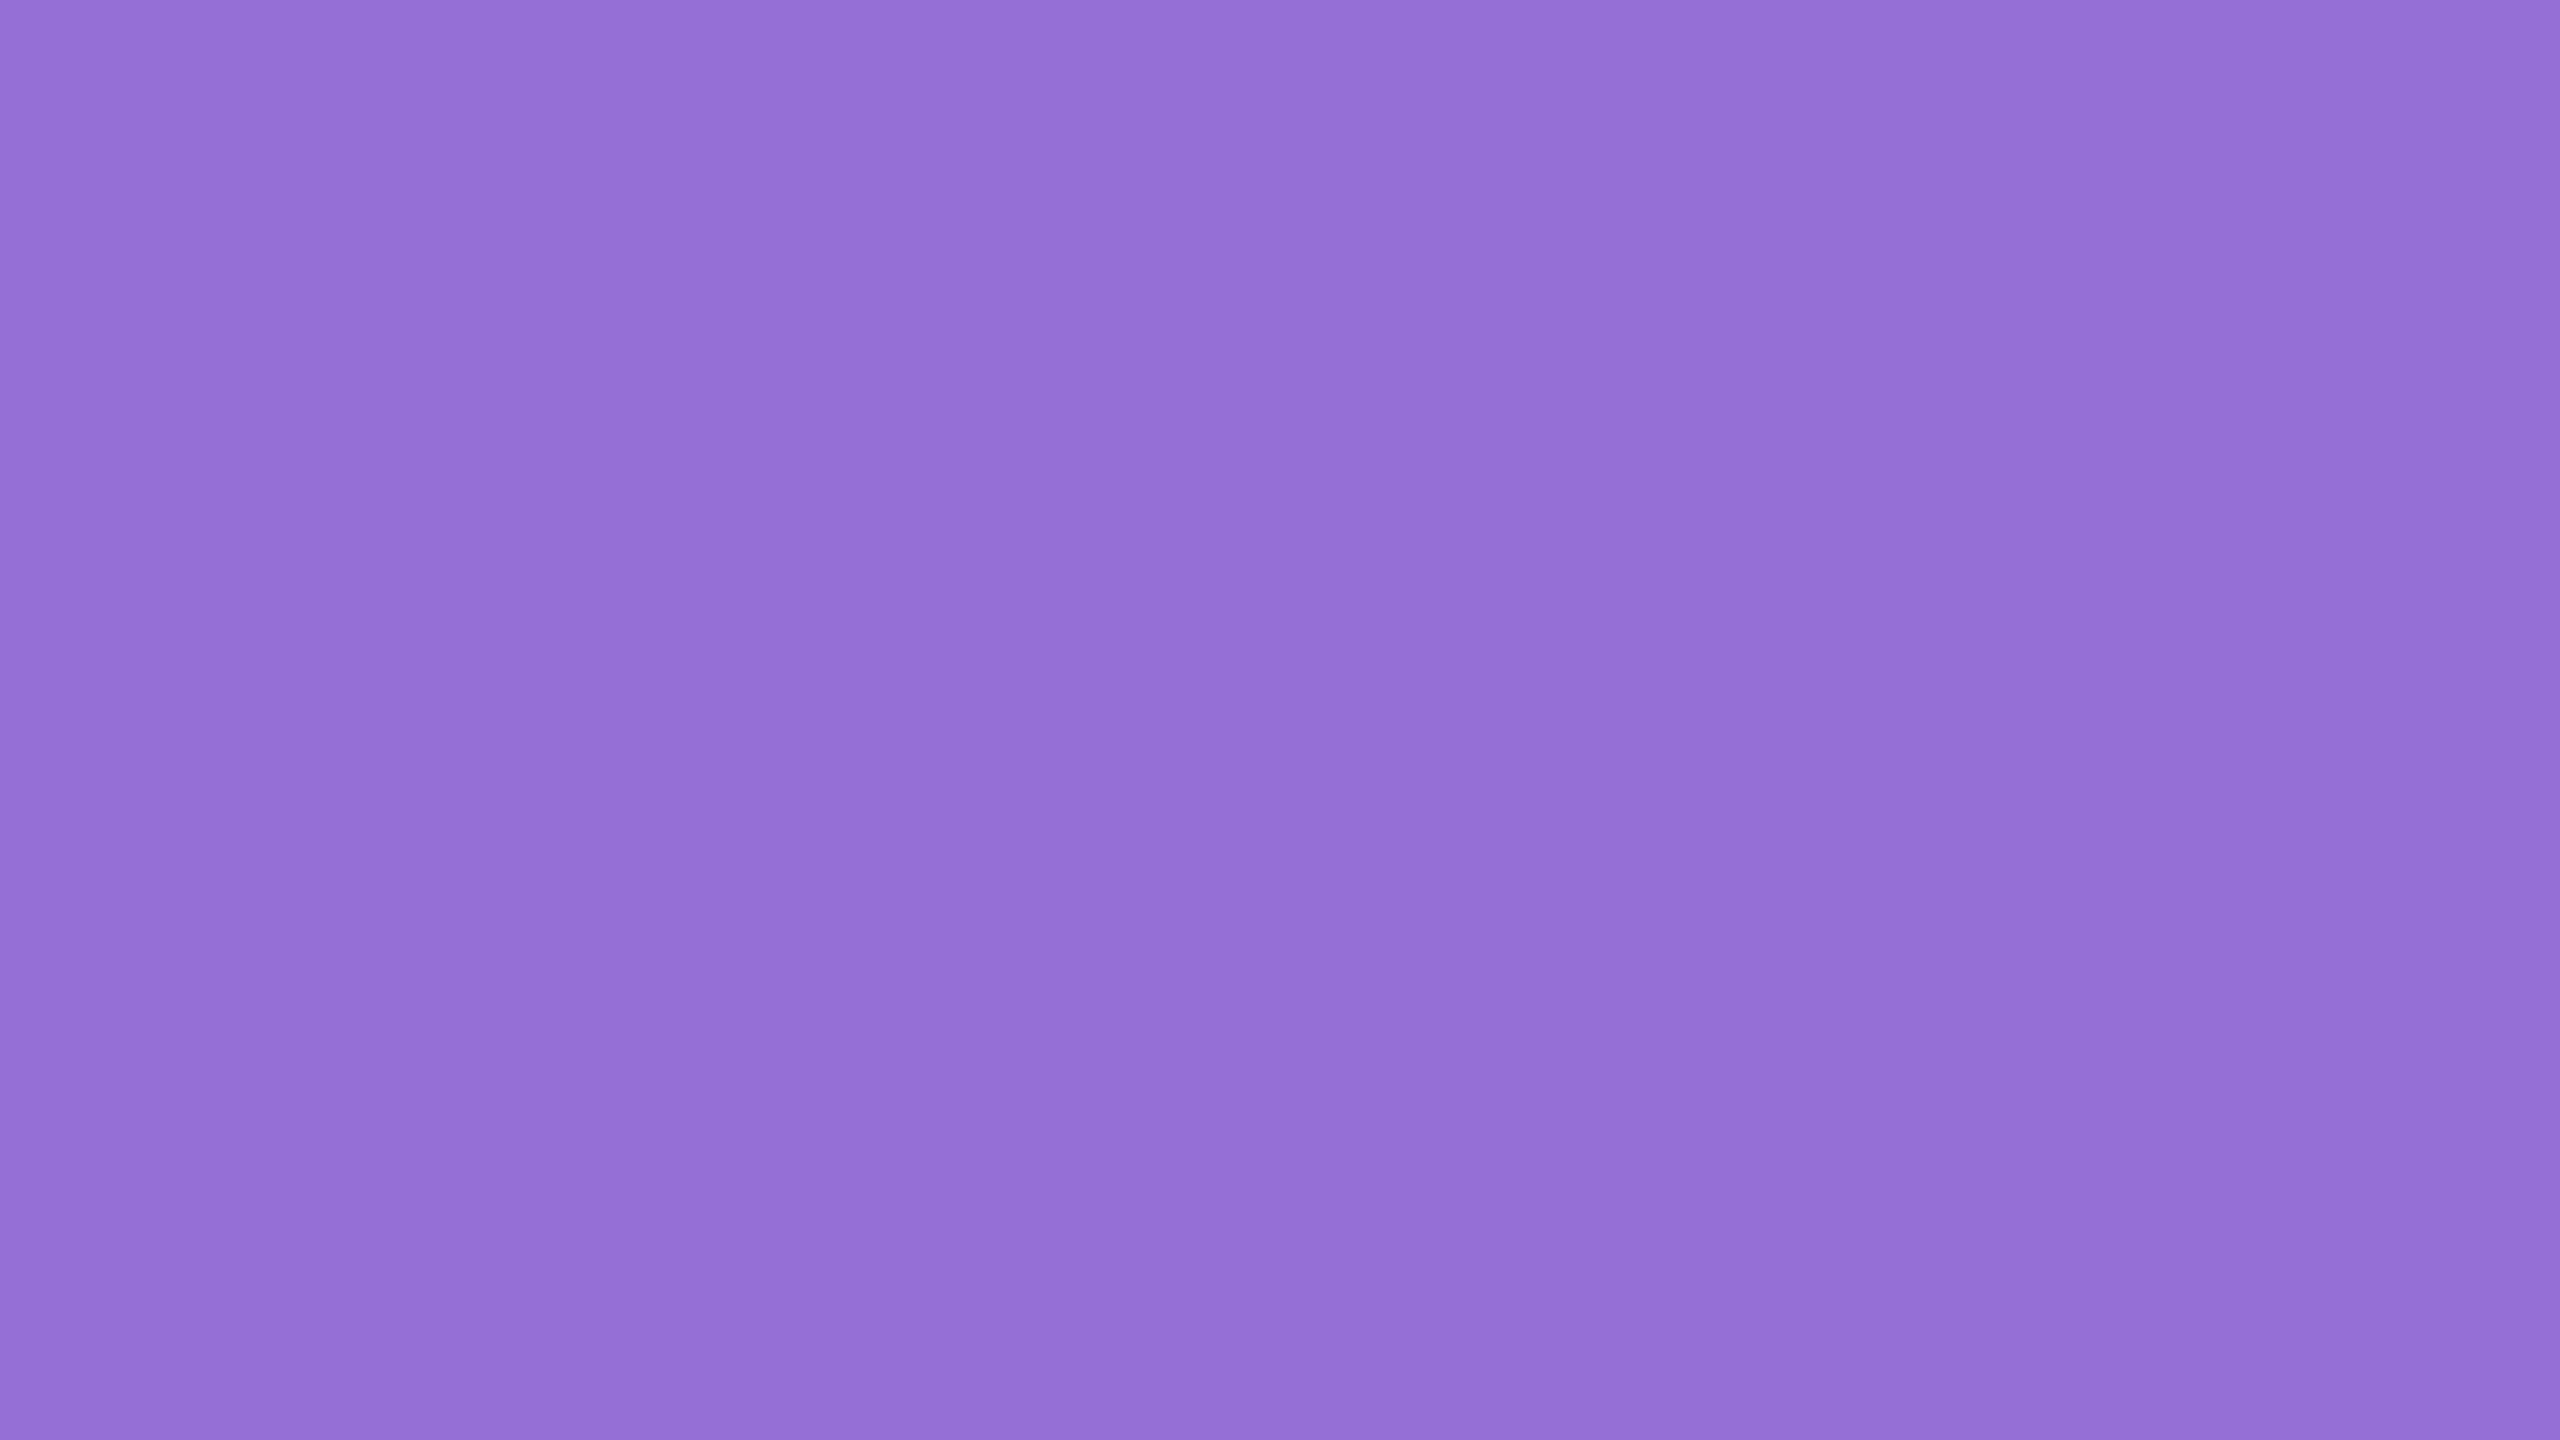 2560x1440 Dark Pastel Purple Solid Color Background